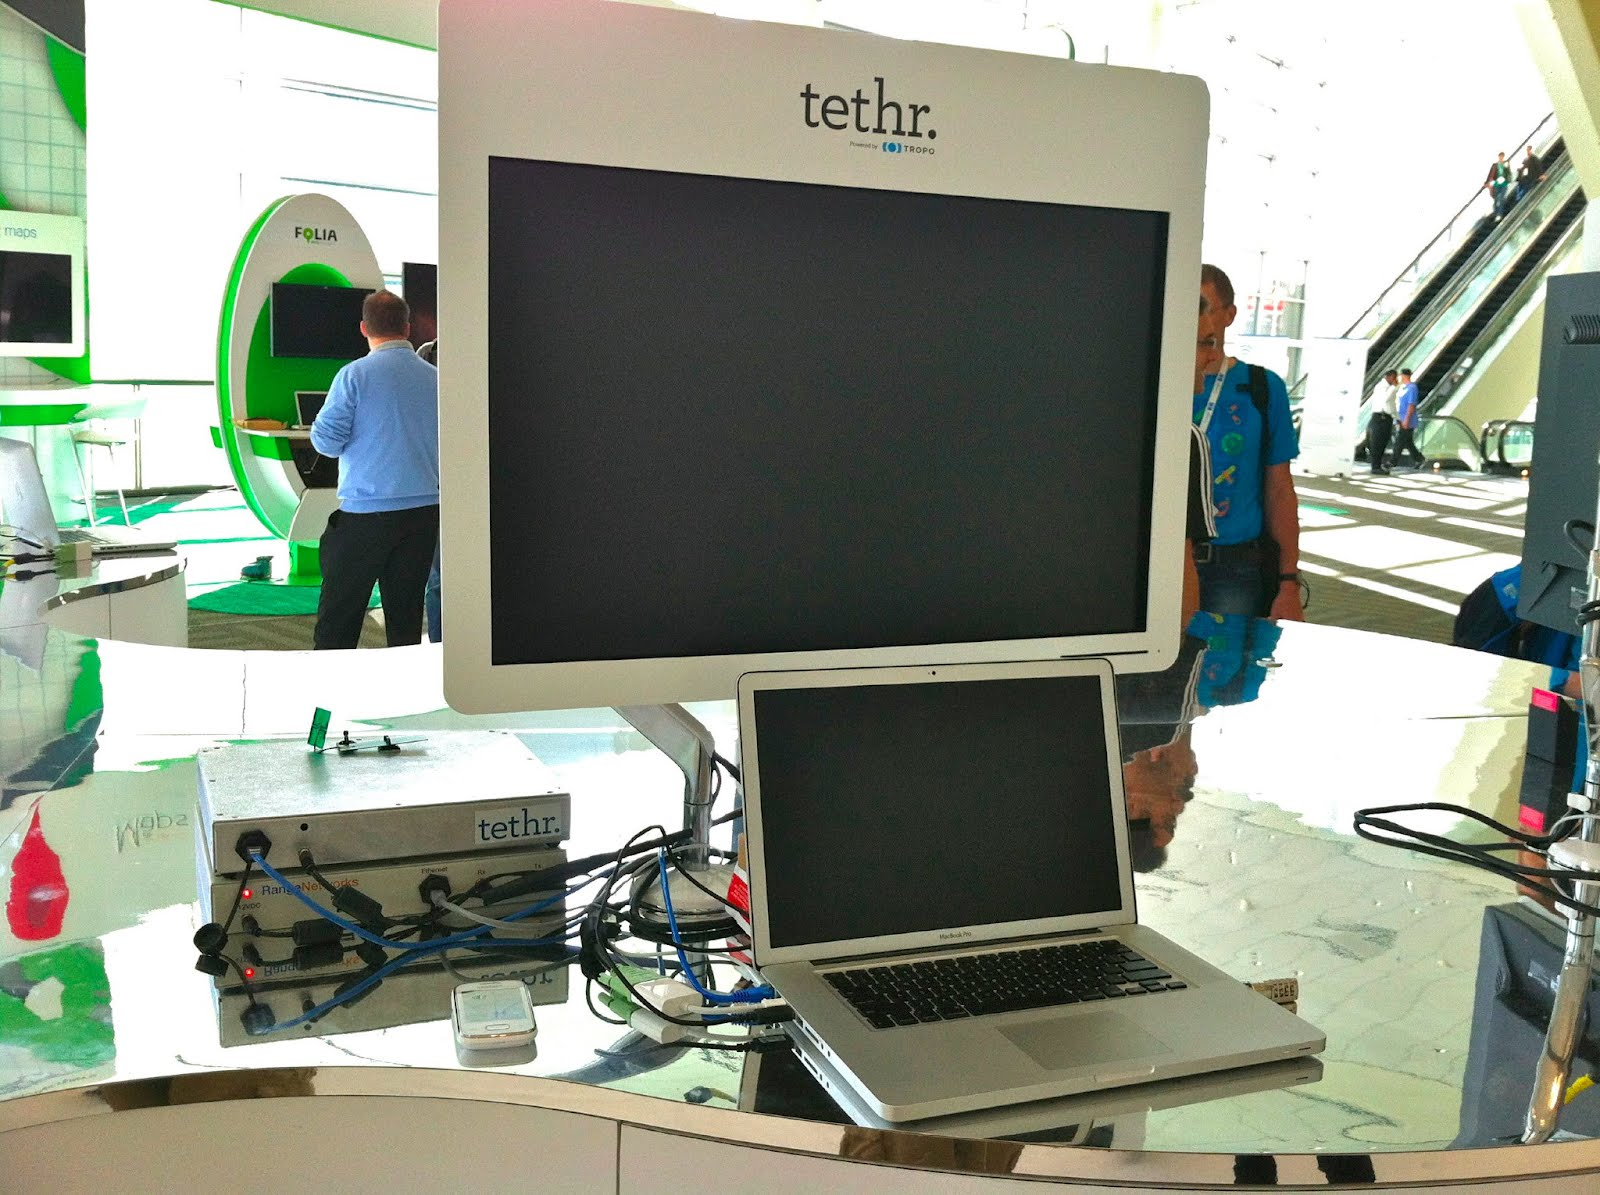 Tethr in action at Google I/O 2012